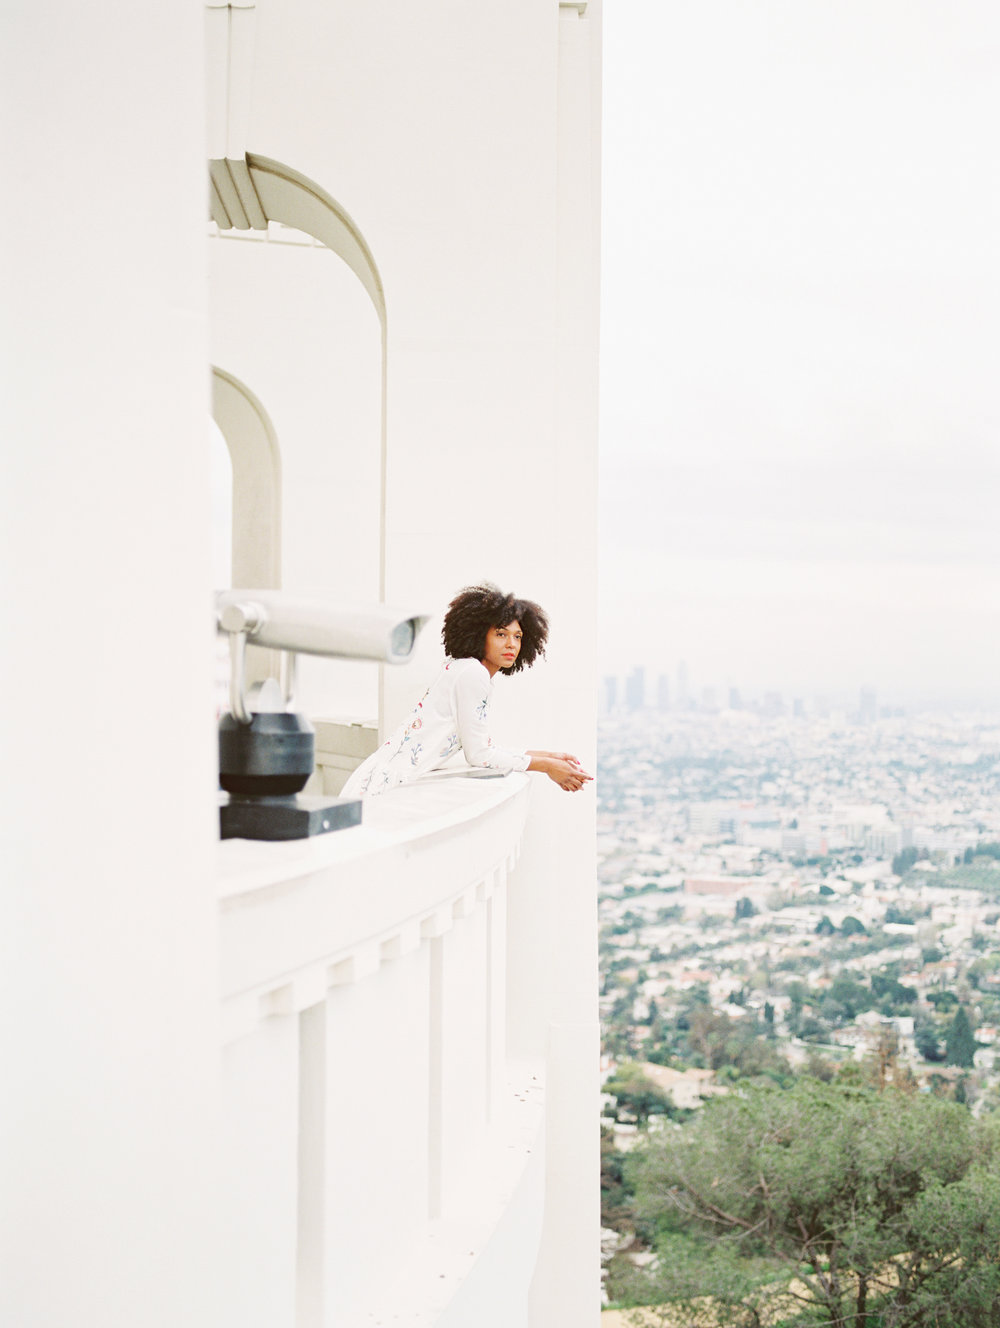 Film captured by the talented Jessica of  J.Lee Photos  at Griffith Observatory in LA